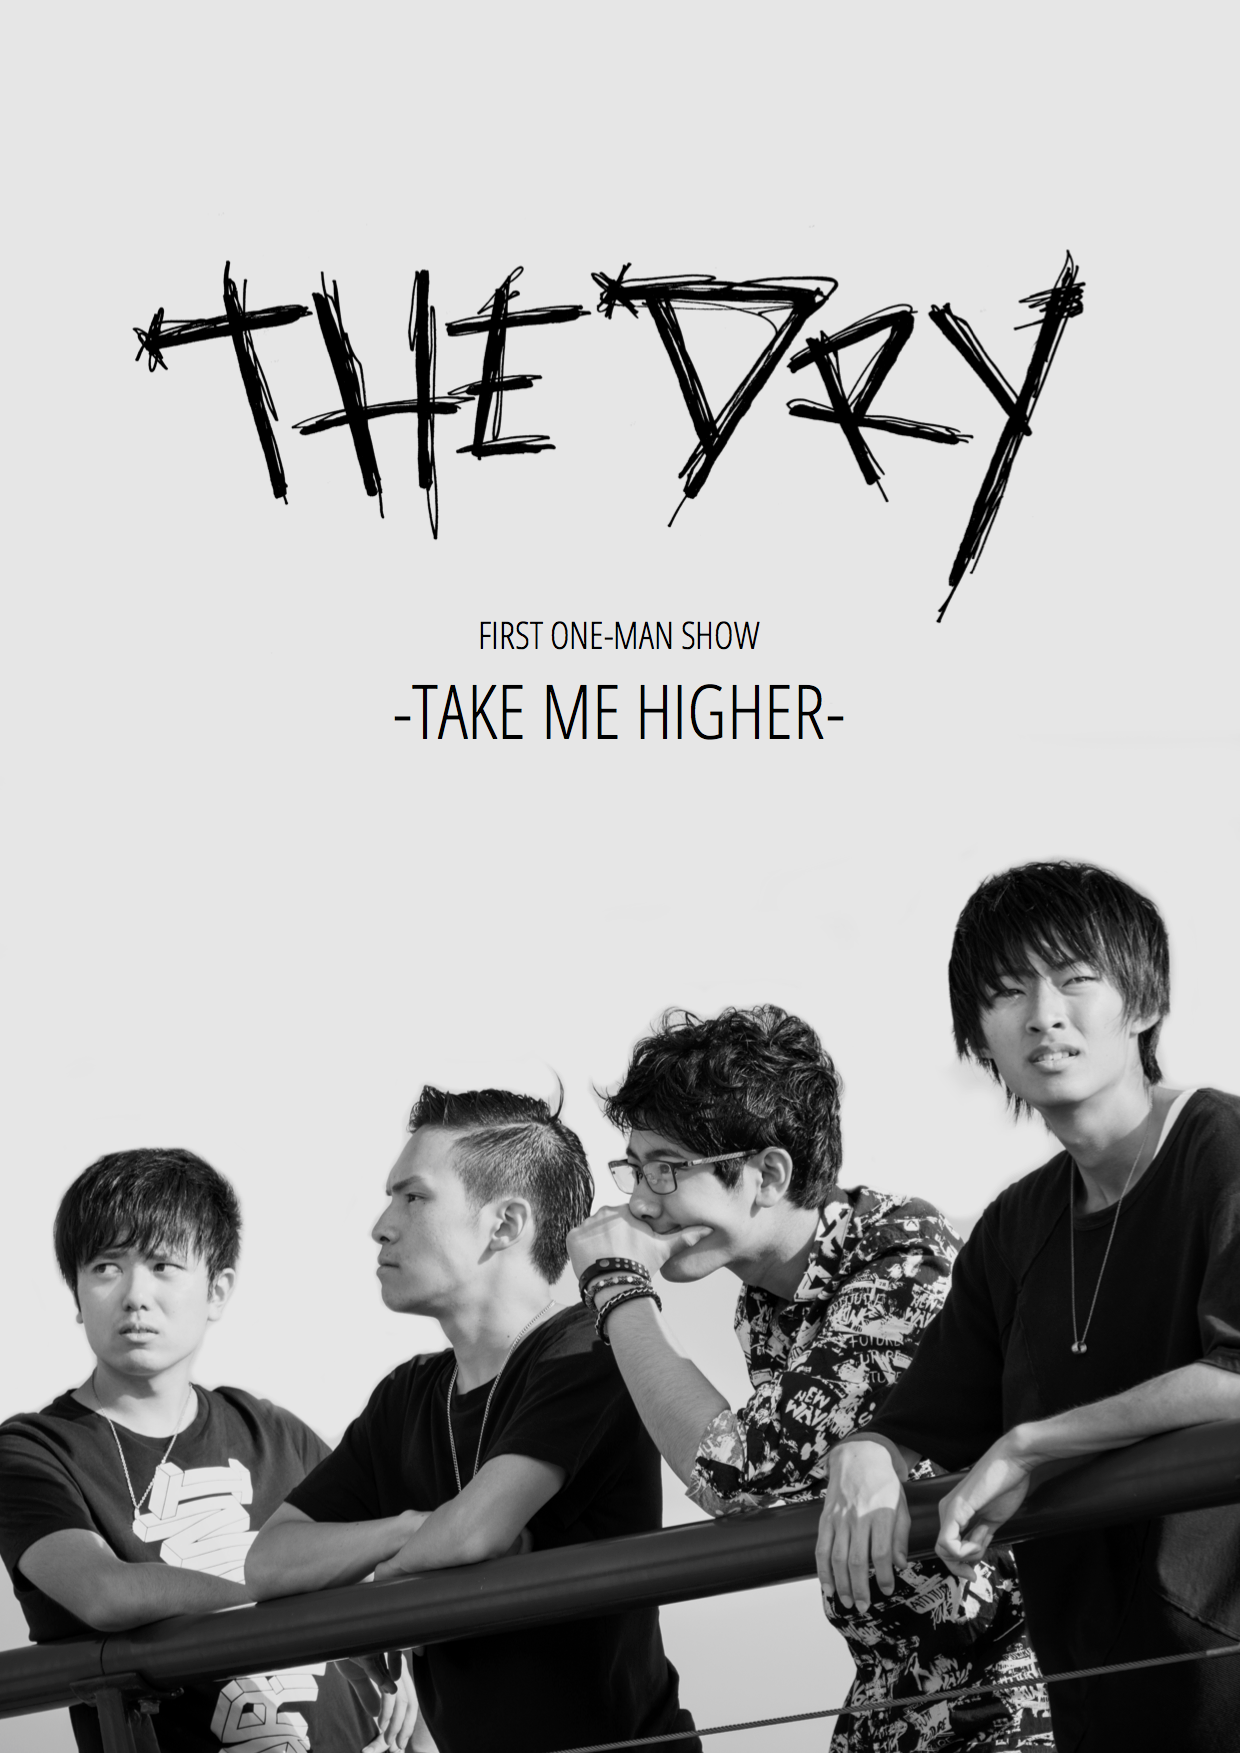 THE DRY FIRST ONE-MAN SHOW -Take Me Higher-